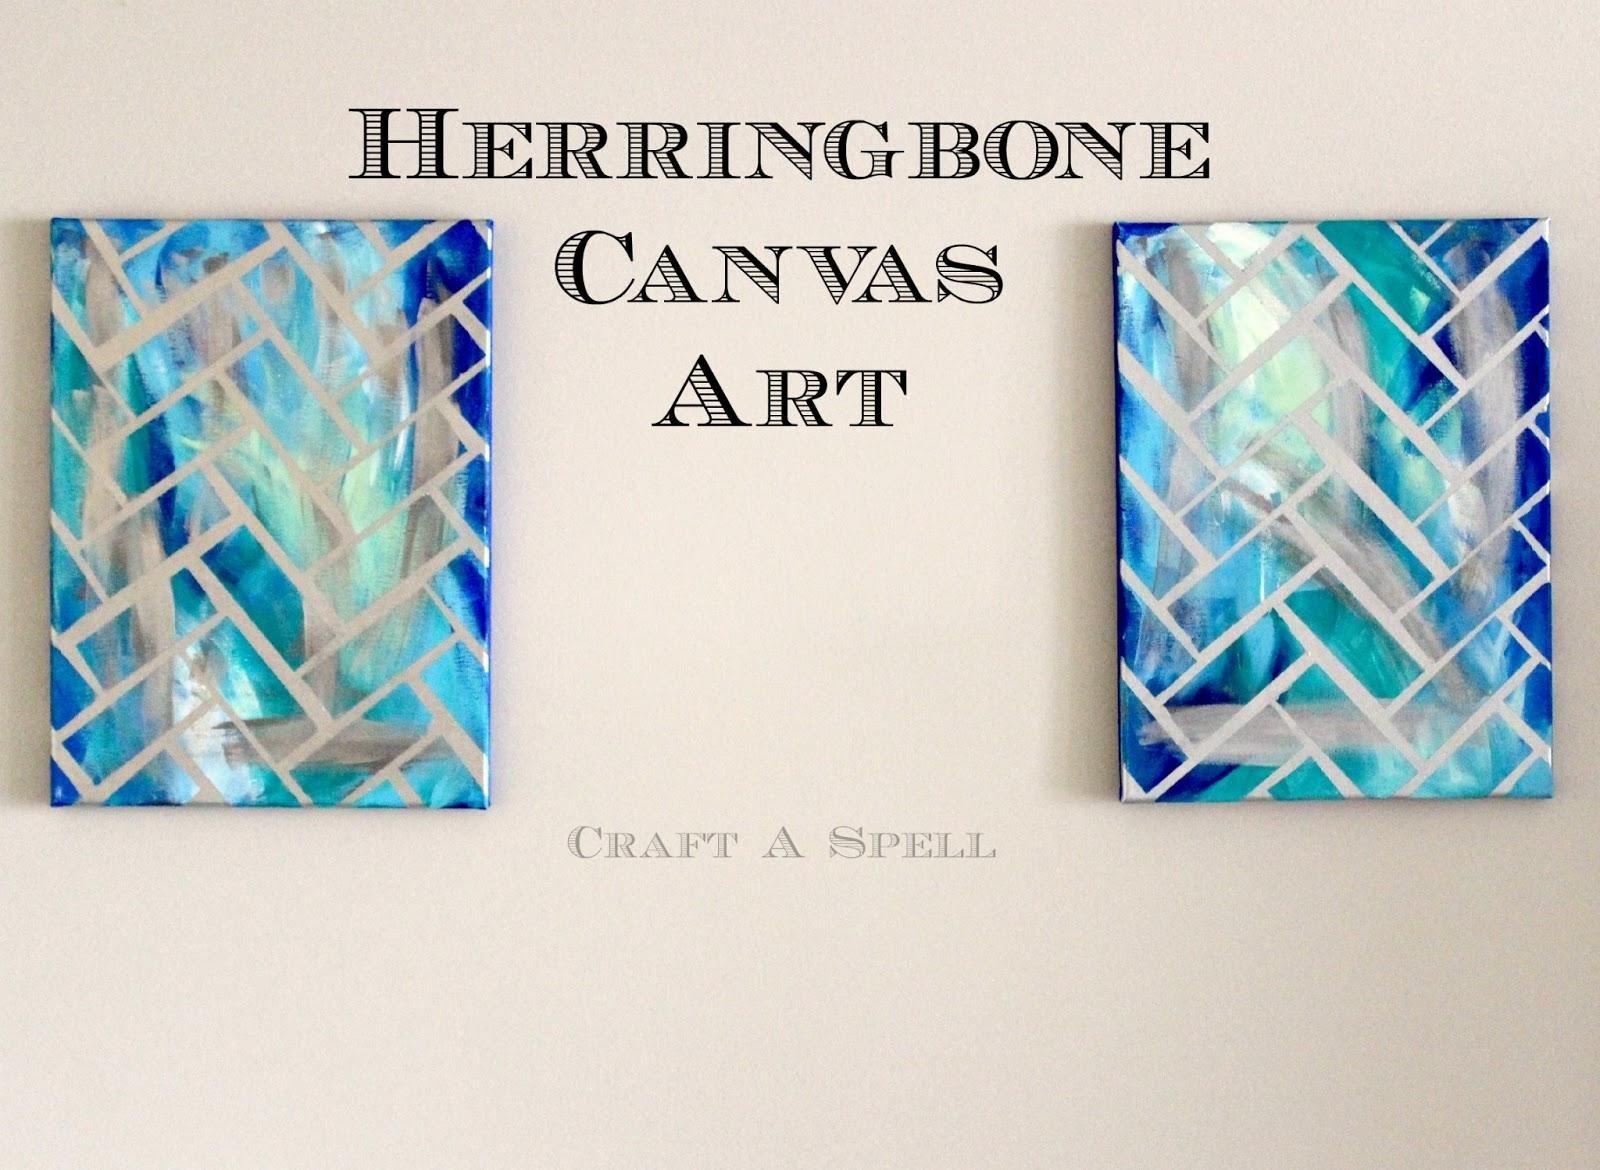 Craft A Spell: Diy Herringbone Canvas Art For Diy Pinterest Canvas Art (View 4 of 20)